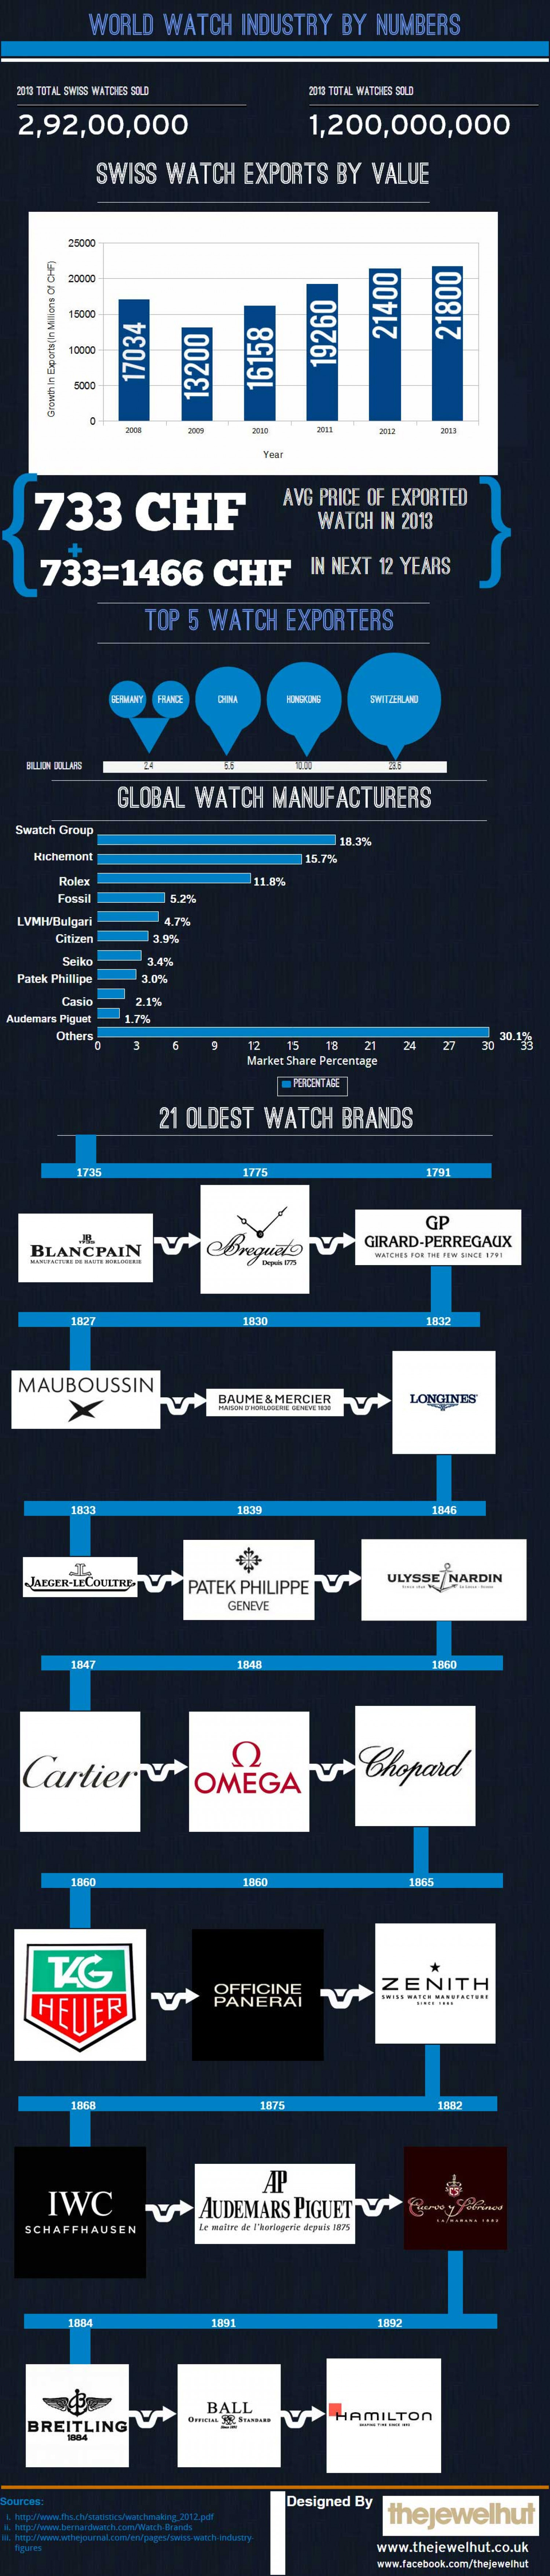 World Watch Industry By Numbers Infographic